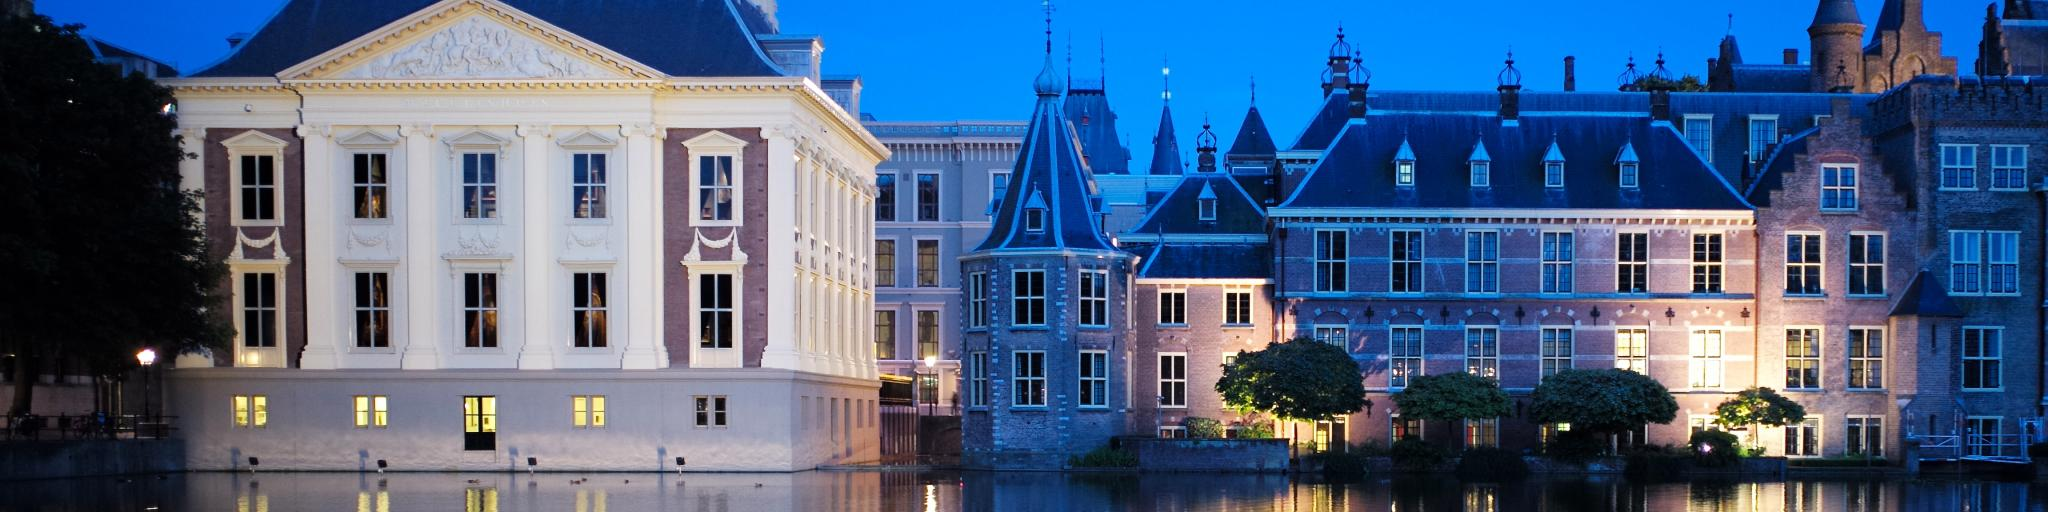 The Mauritshuis Museum and the Torentje in the Hague are lit up by spotlights at dusk